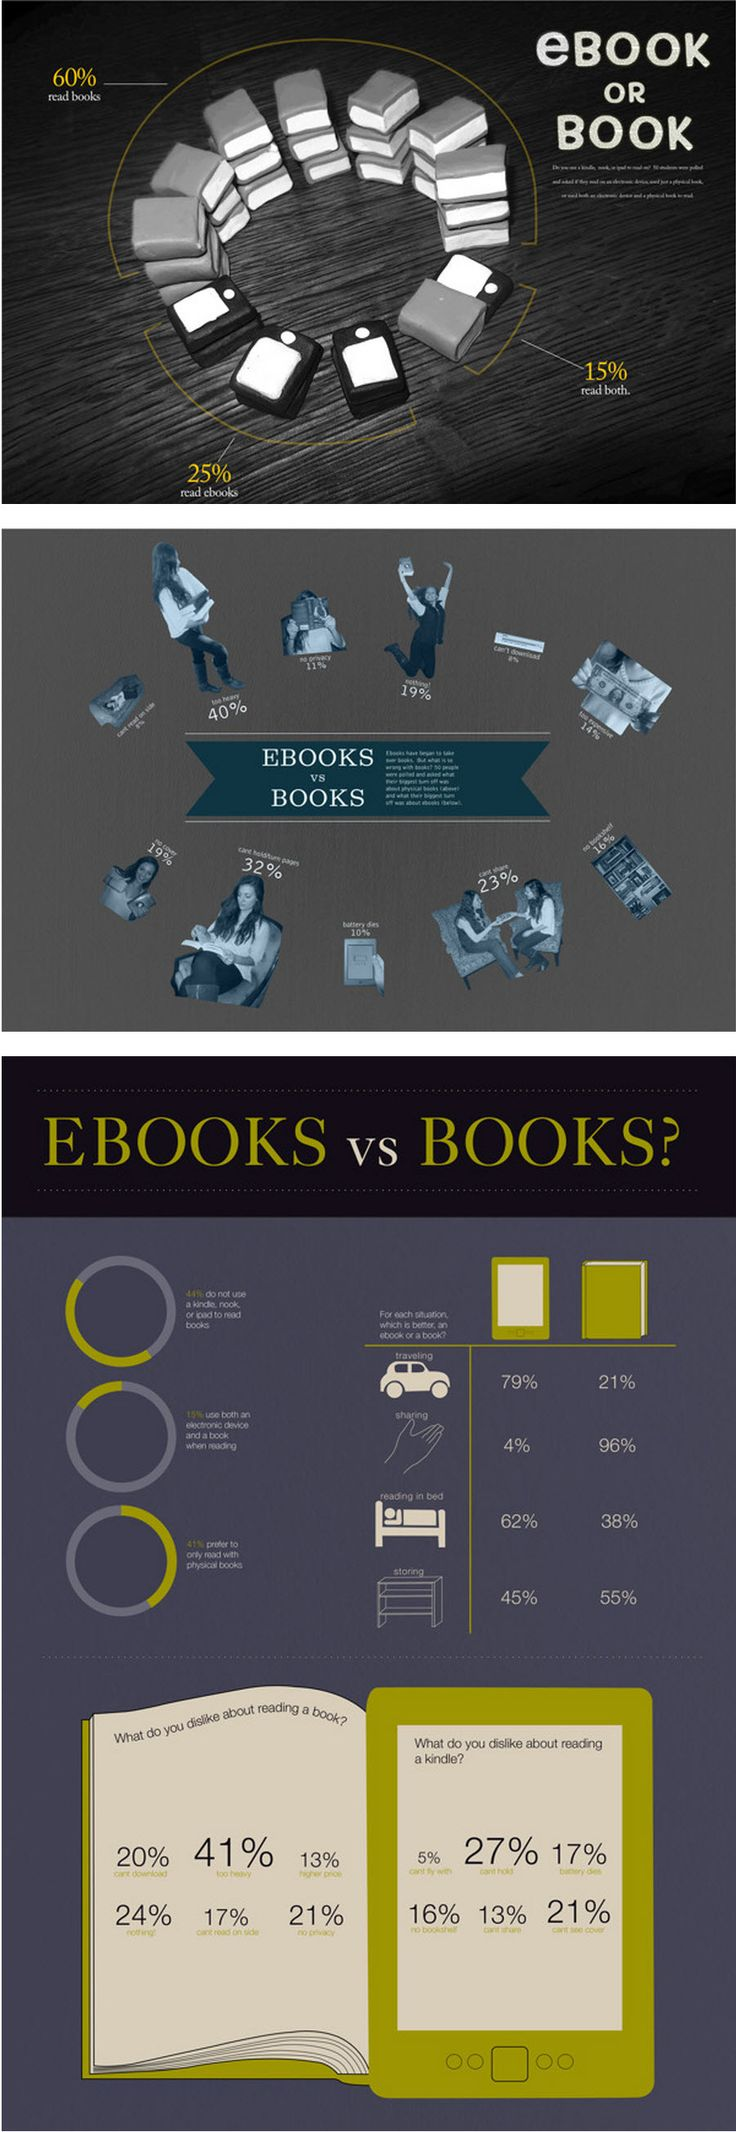 The 16 best ebook stats images on pinterest reading infographic ebooks vs books infografia infographic ebooks fandeluxe Images